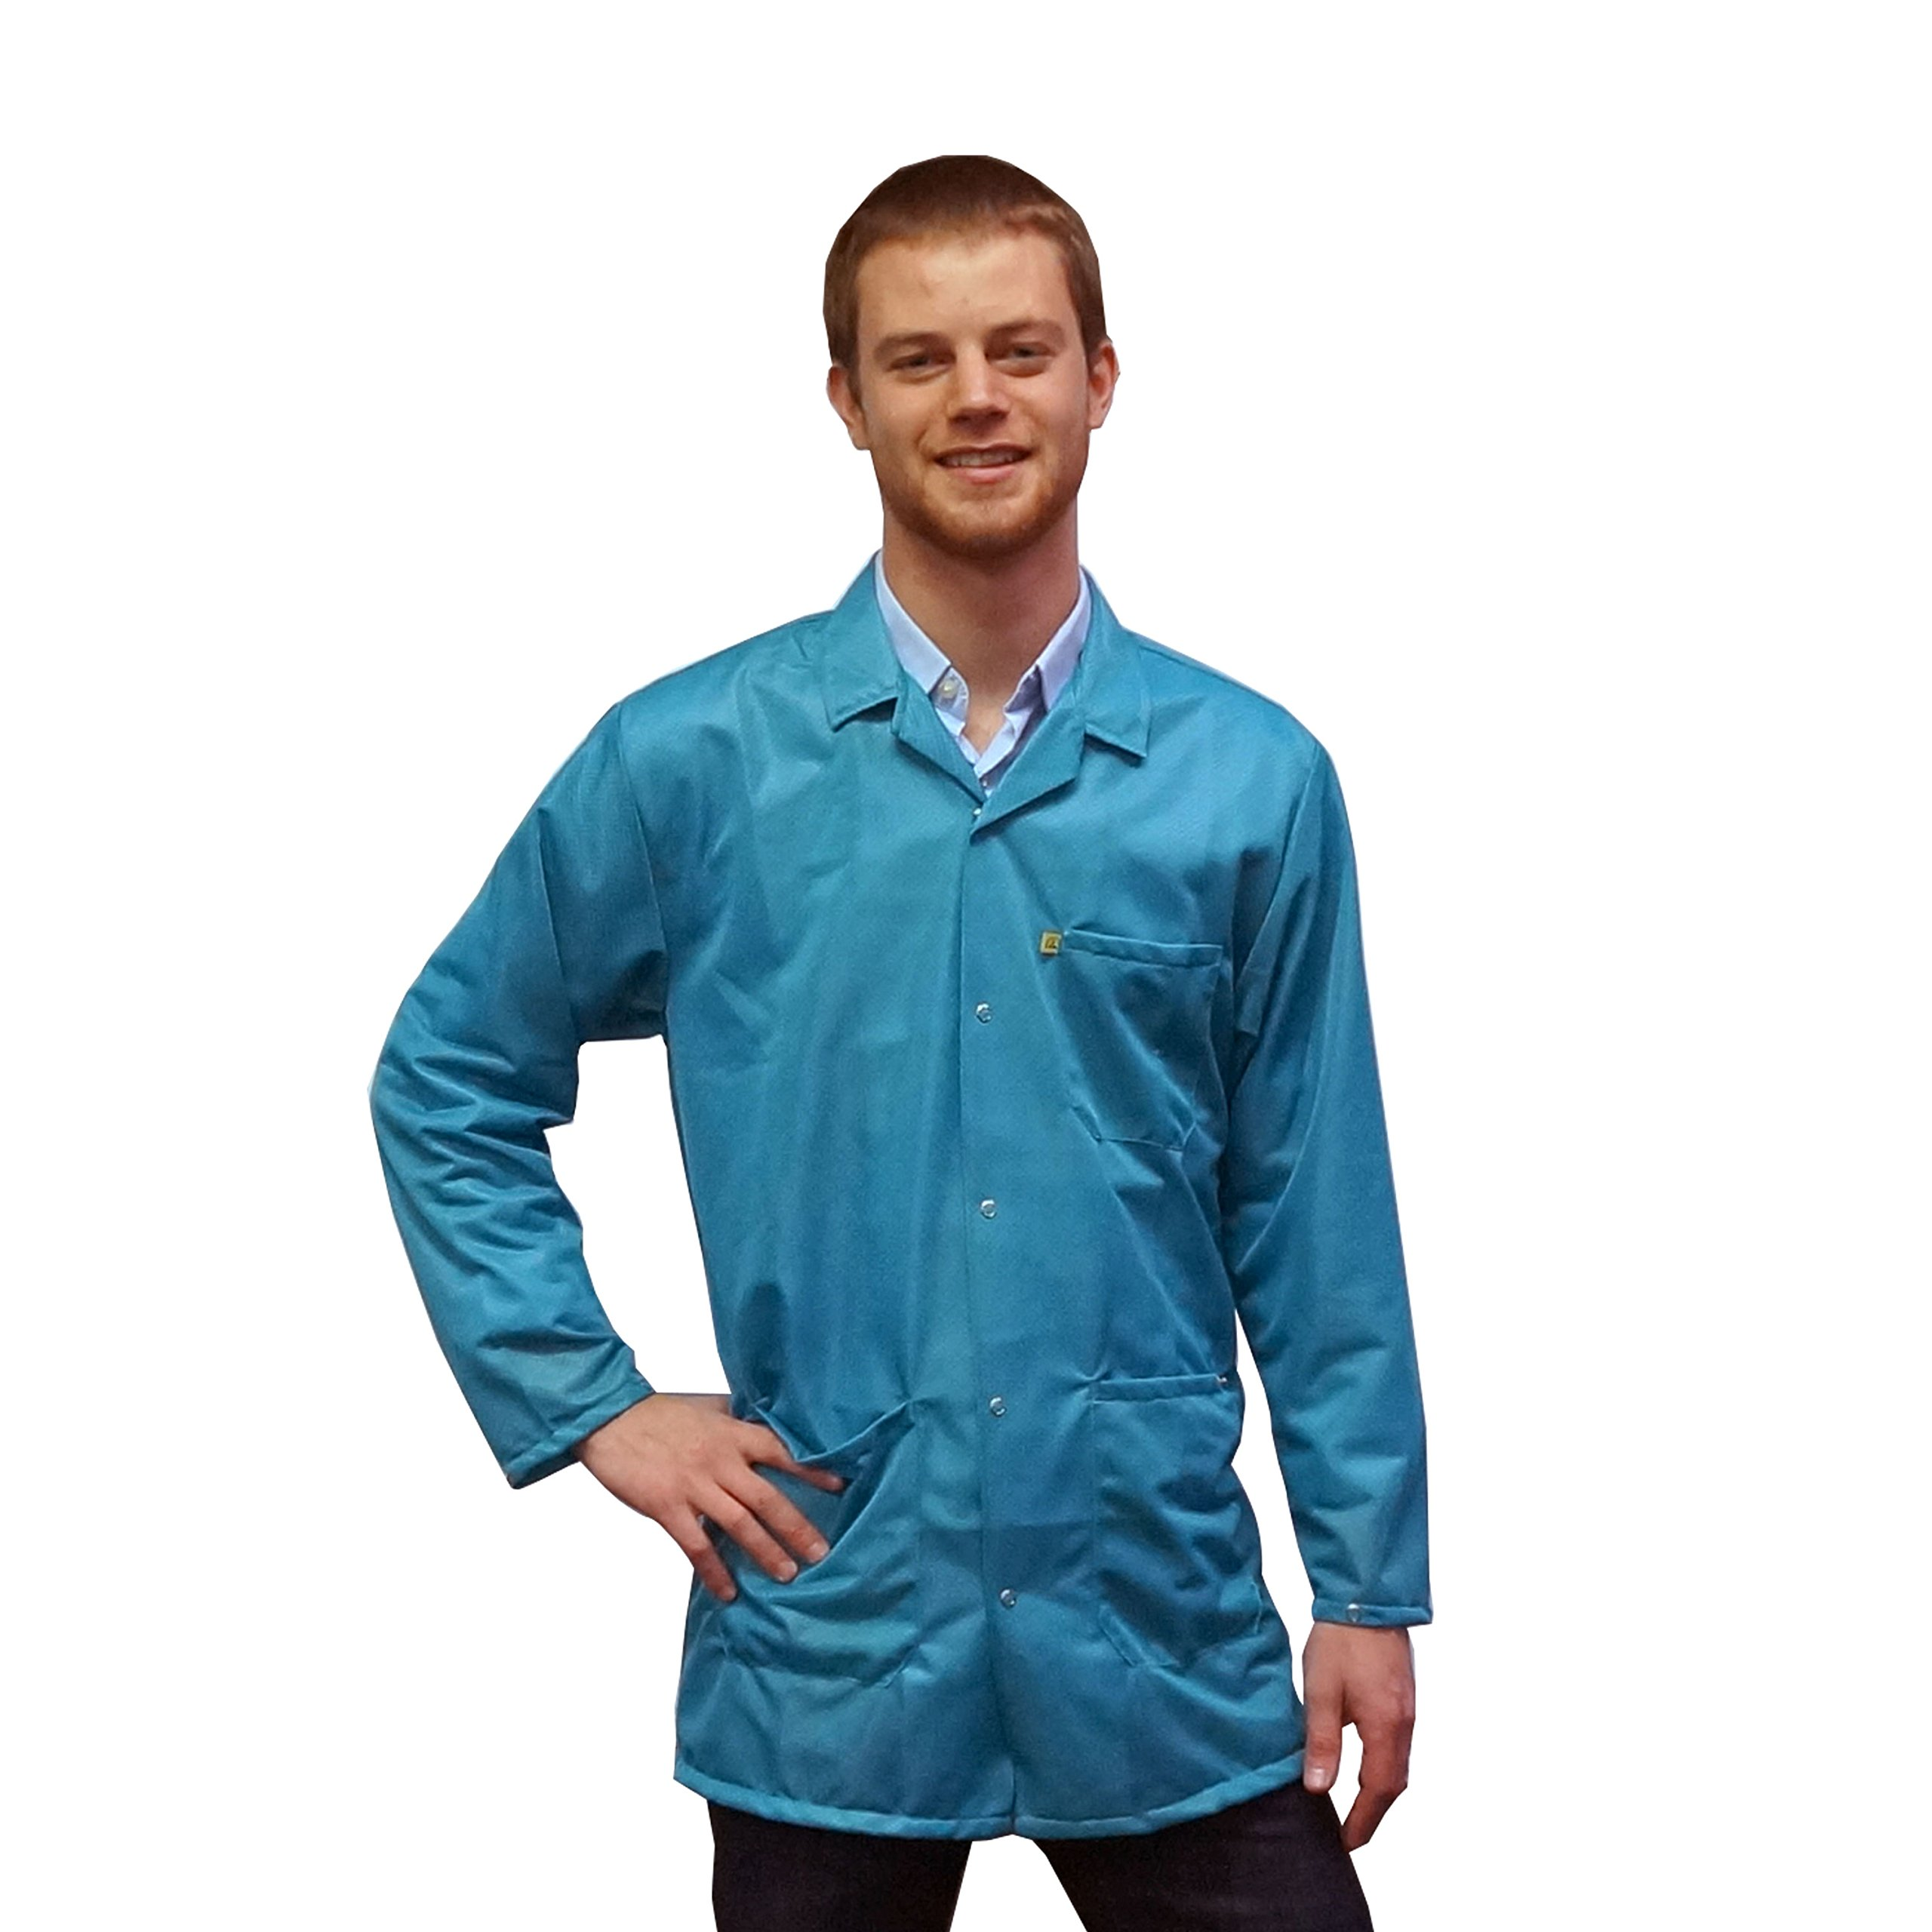 StaticTek Full Sleeve Snap Cuff ESD Jacket | Anti-Static Lab Coat | Certified Level 3 Static Shielding | Light Weight | ESD Smocks with High ESD Protection | Medium | Teal | TT_JKC9023SPTL